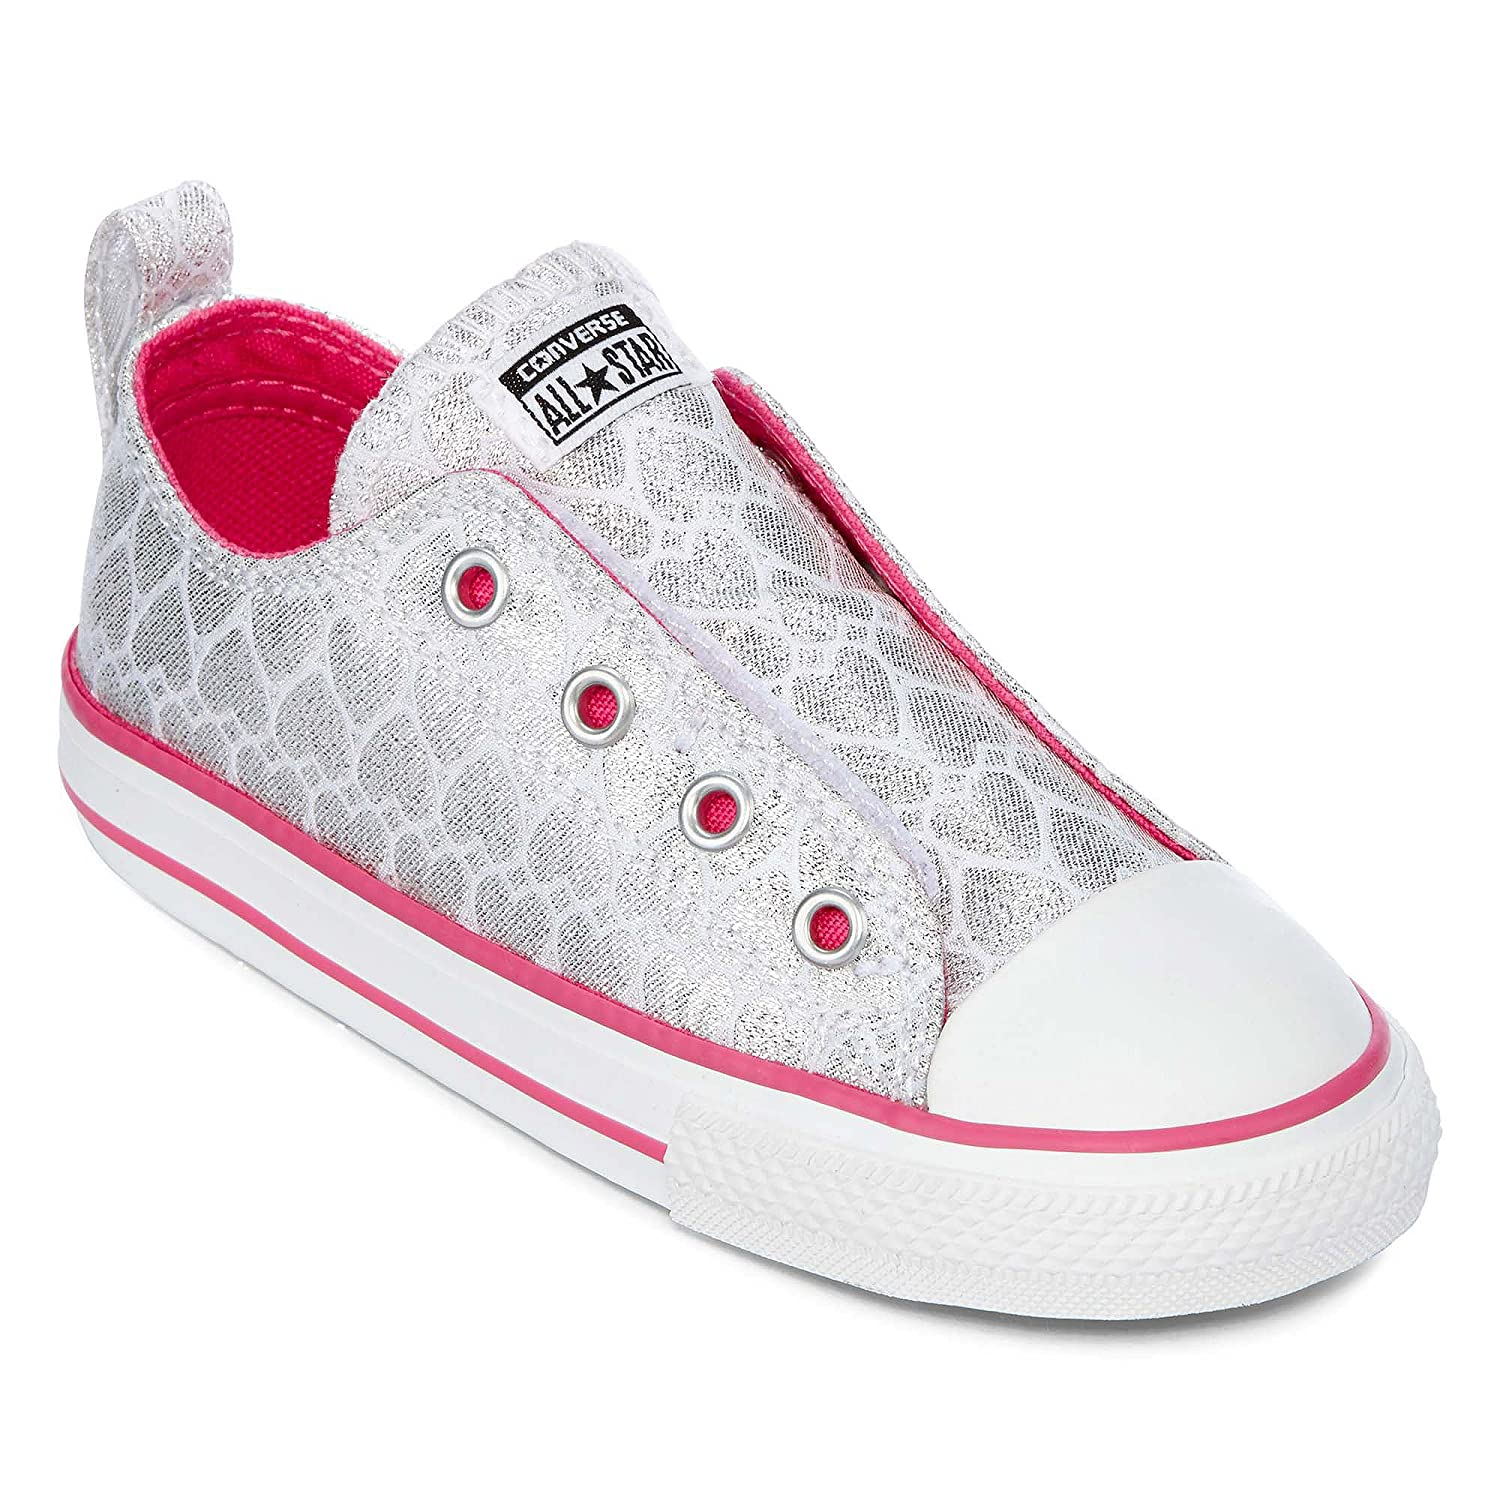 Converse Chuck Taylor All Star Season OX, Unisex Sneaker  18 M EU S?ugling|Silver/Pink/White